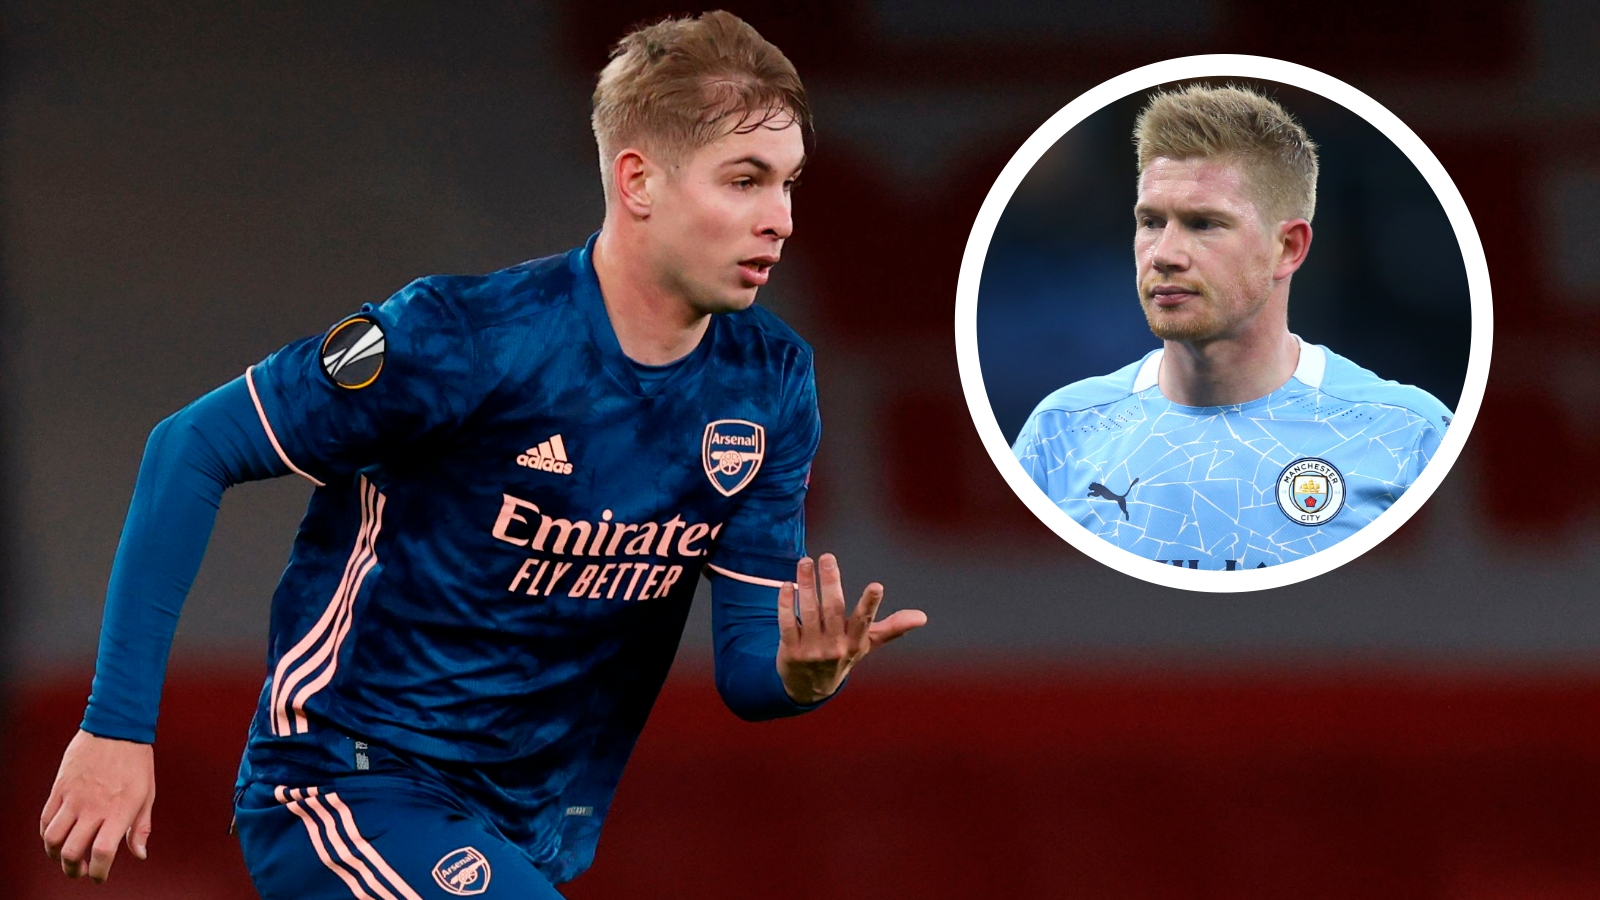 Emile Smith Rowe Arsenal S Croydon De Bruyne Who Can Find Space In A Telephone Box Goal Com